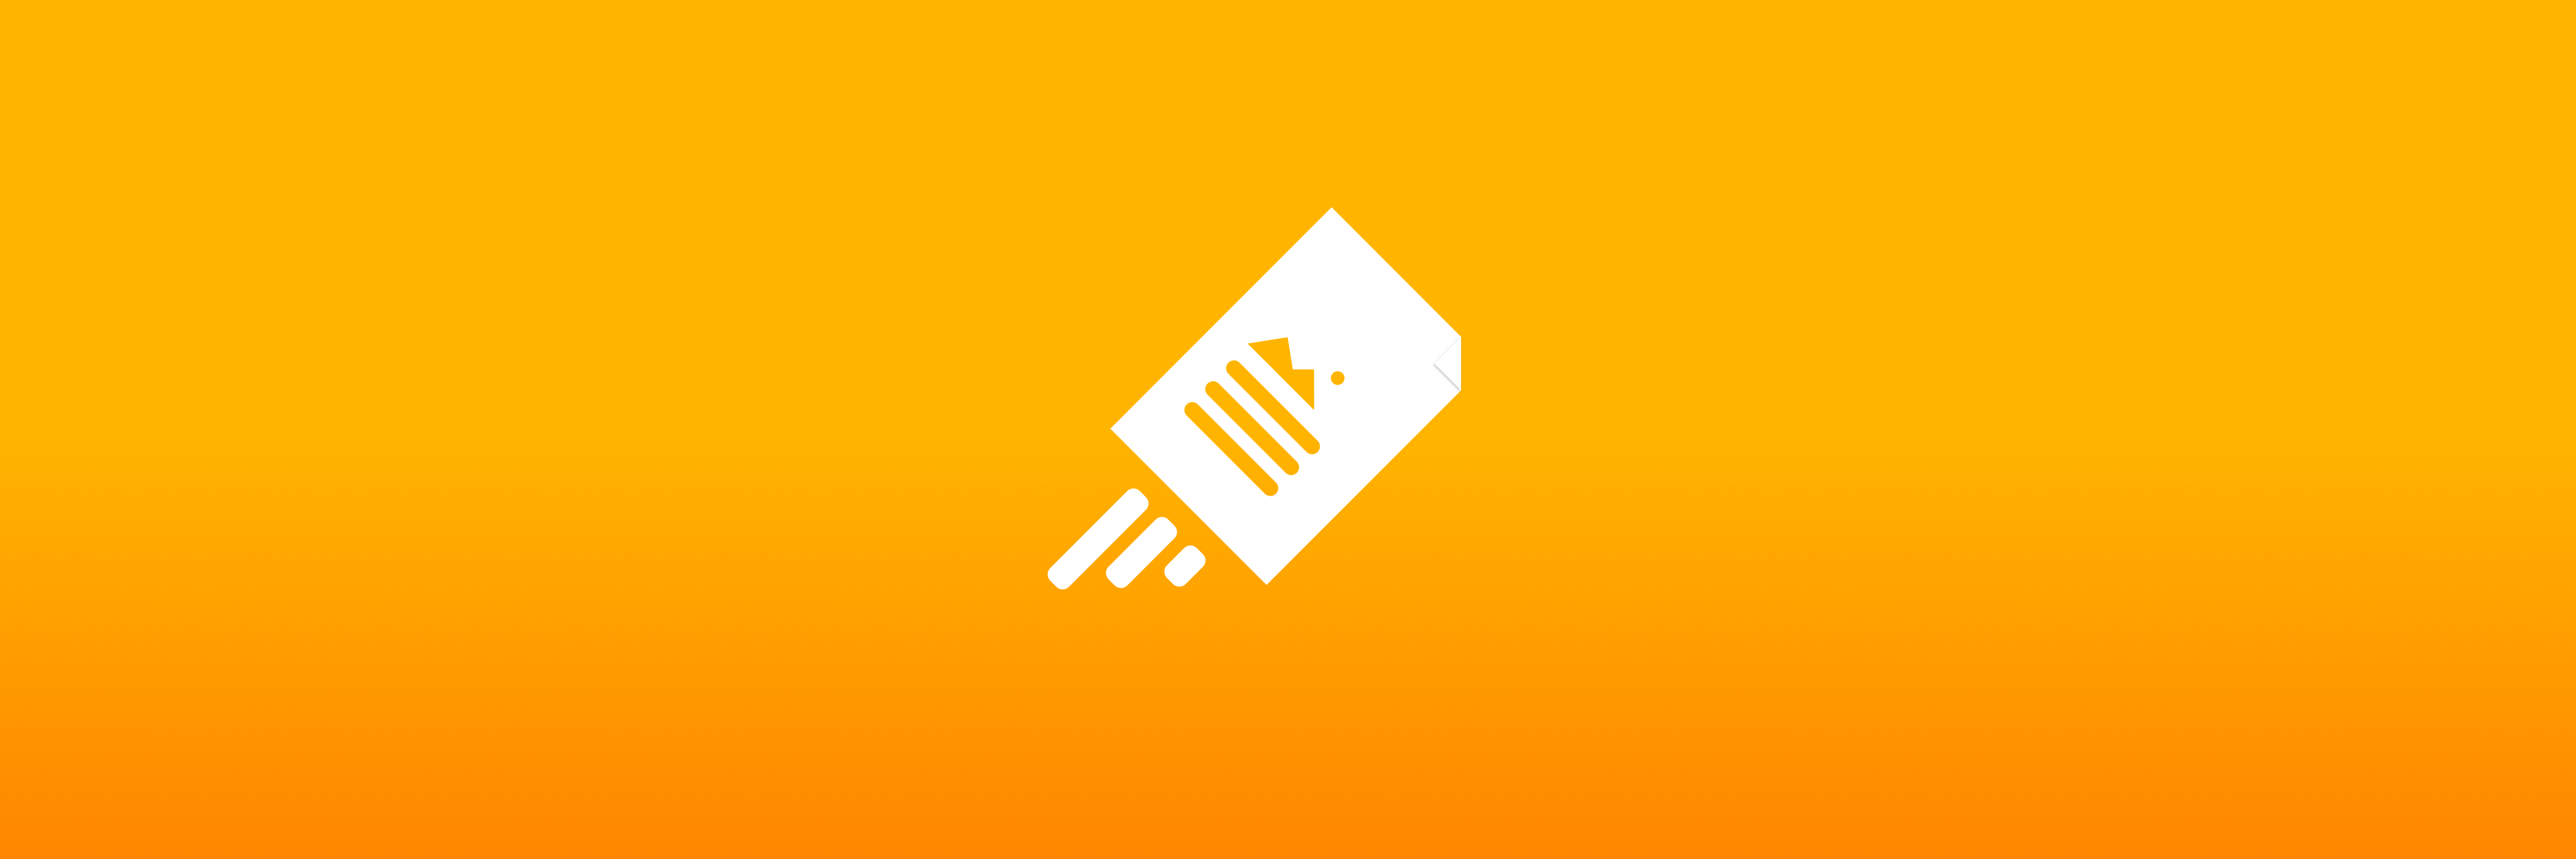 FileFly - Network File Sharing banner